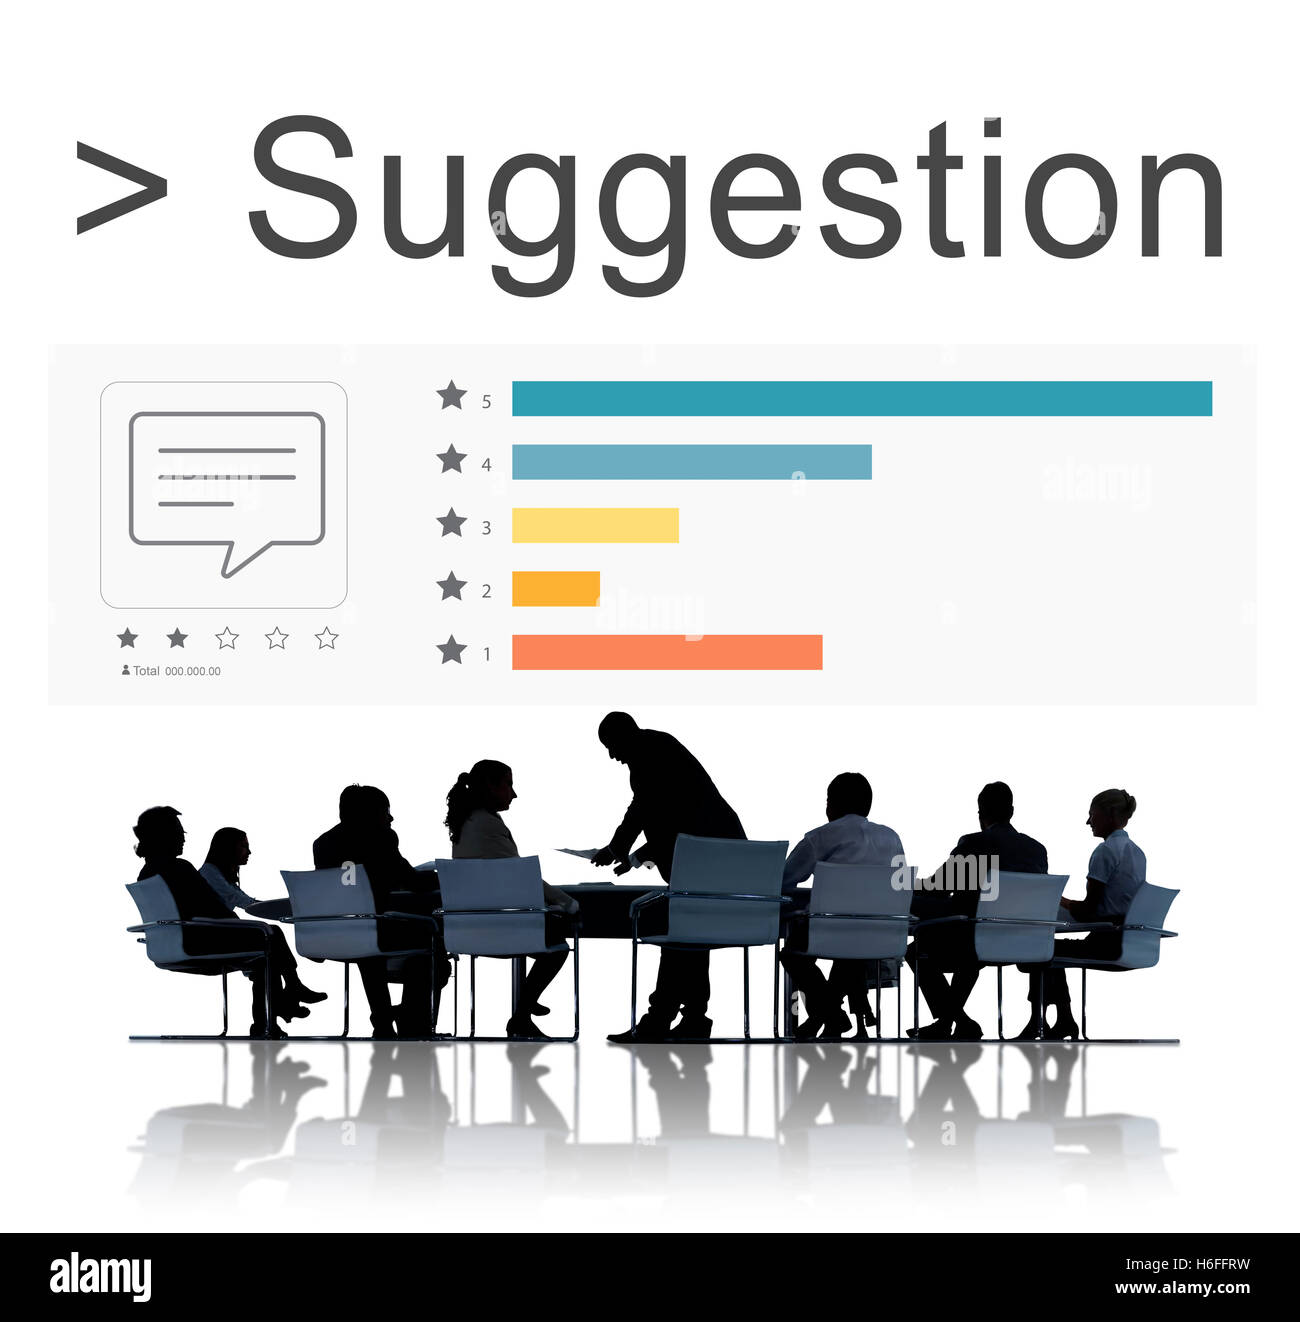 Suggestion Survey Comment Review Ratings Concept - Stock Image